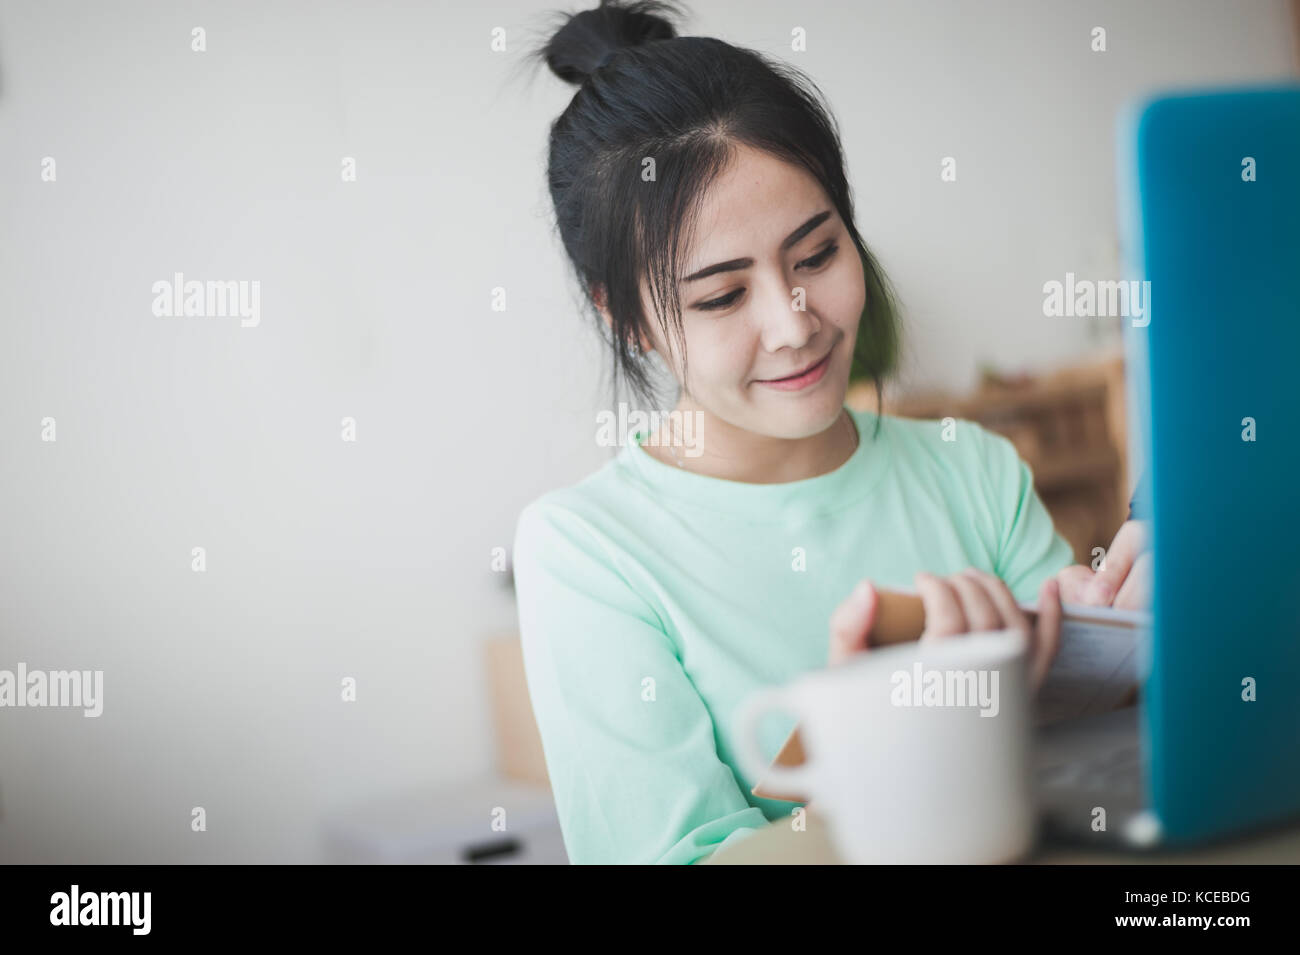 Young attractive Asian woman freelancer writing on notebook by left hand while working with laptop computer. Work - Stock Image